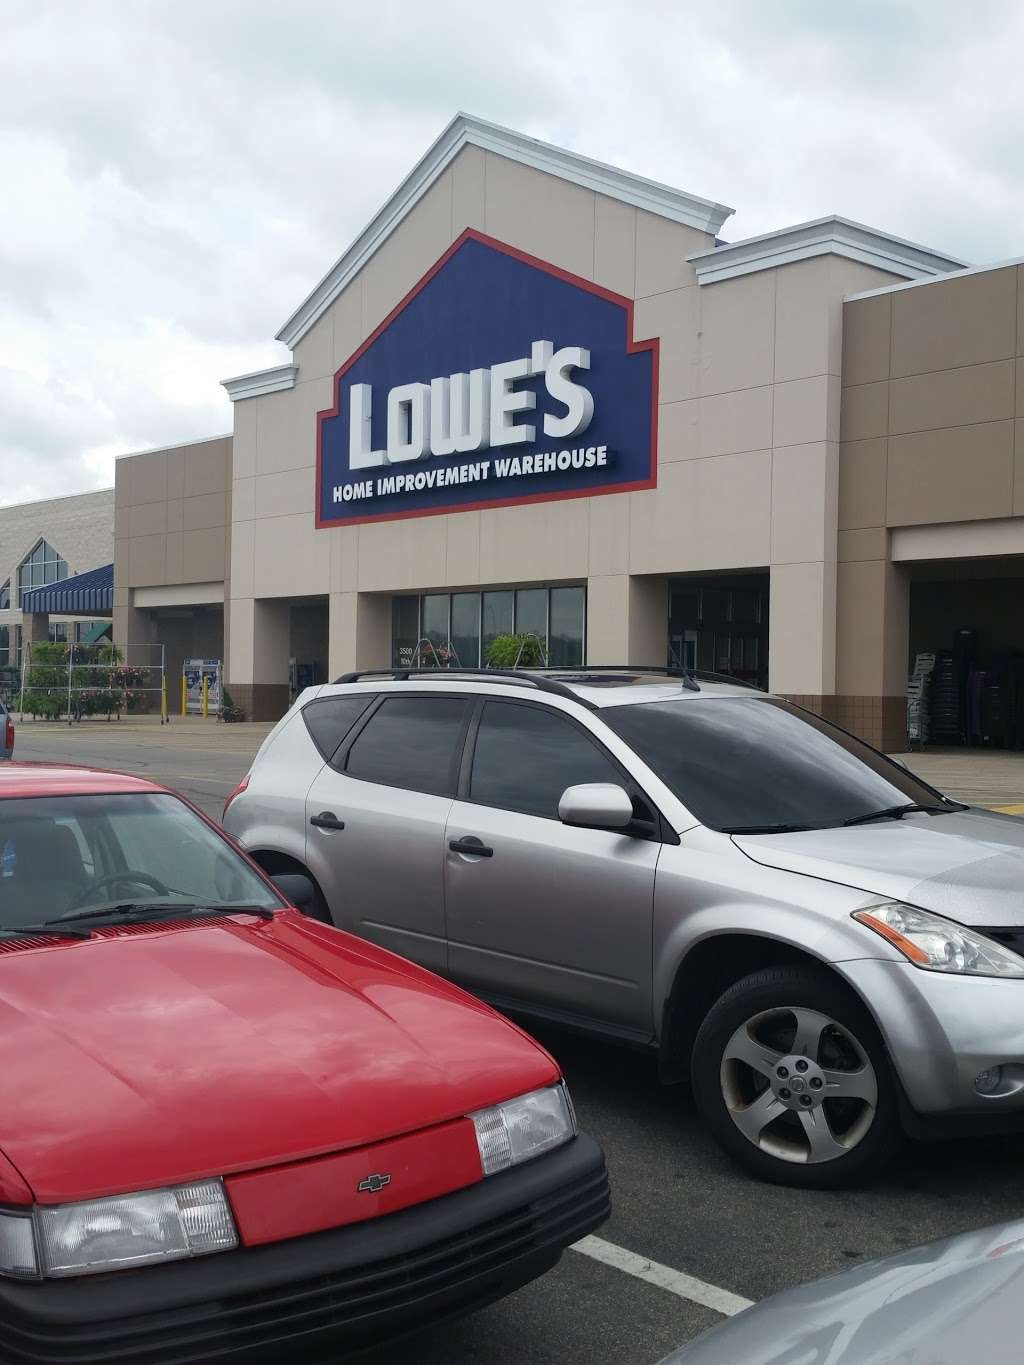 Lowes Home Improvement - hardware store  | Photo 10 of 10 | Address: 3500 10th St, Columbus, IN 47201, USA | Phone: (812) 376-0521